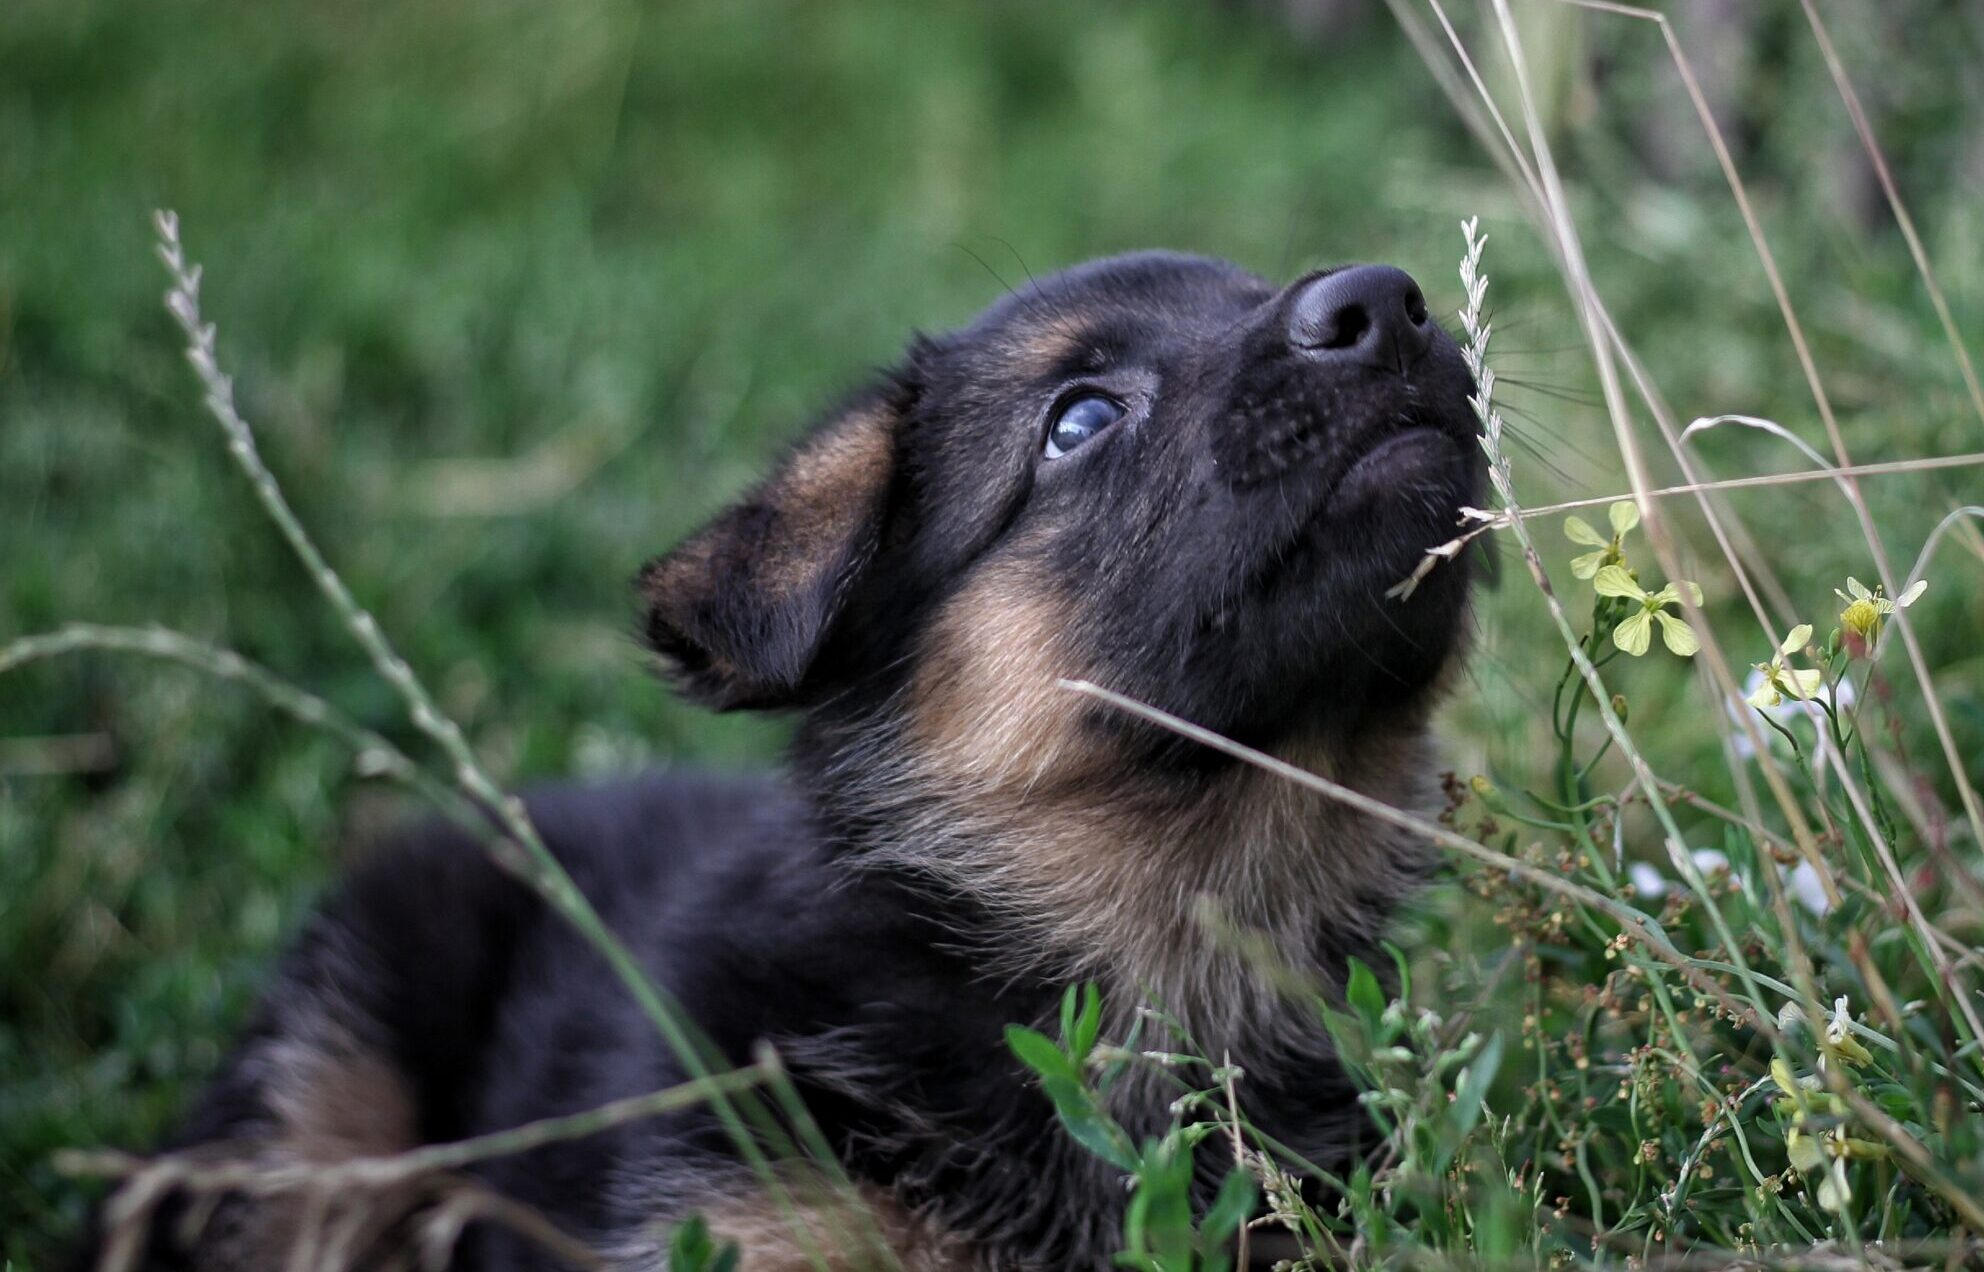 Holistic puppy obedience training sessions